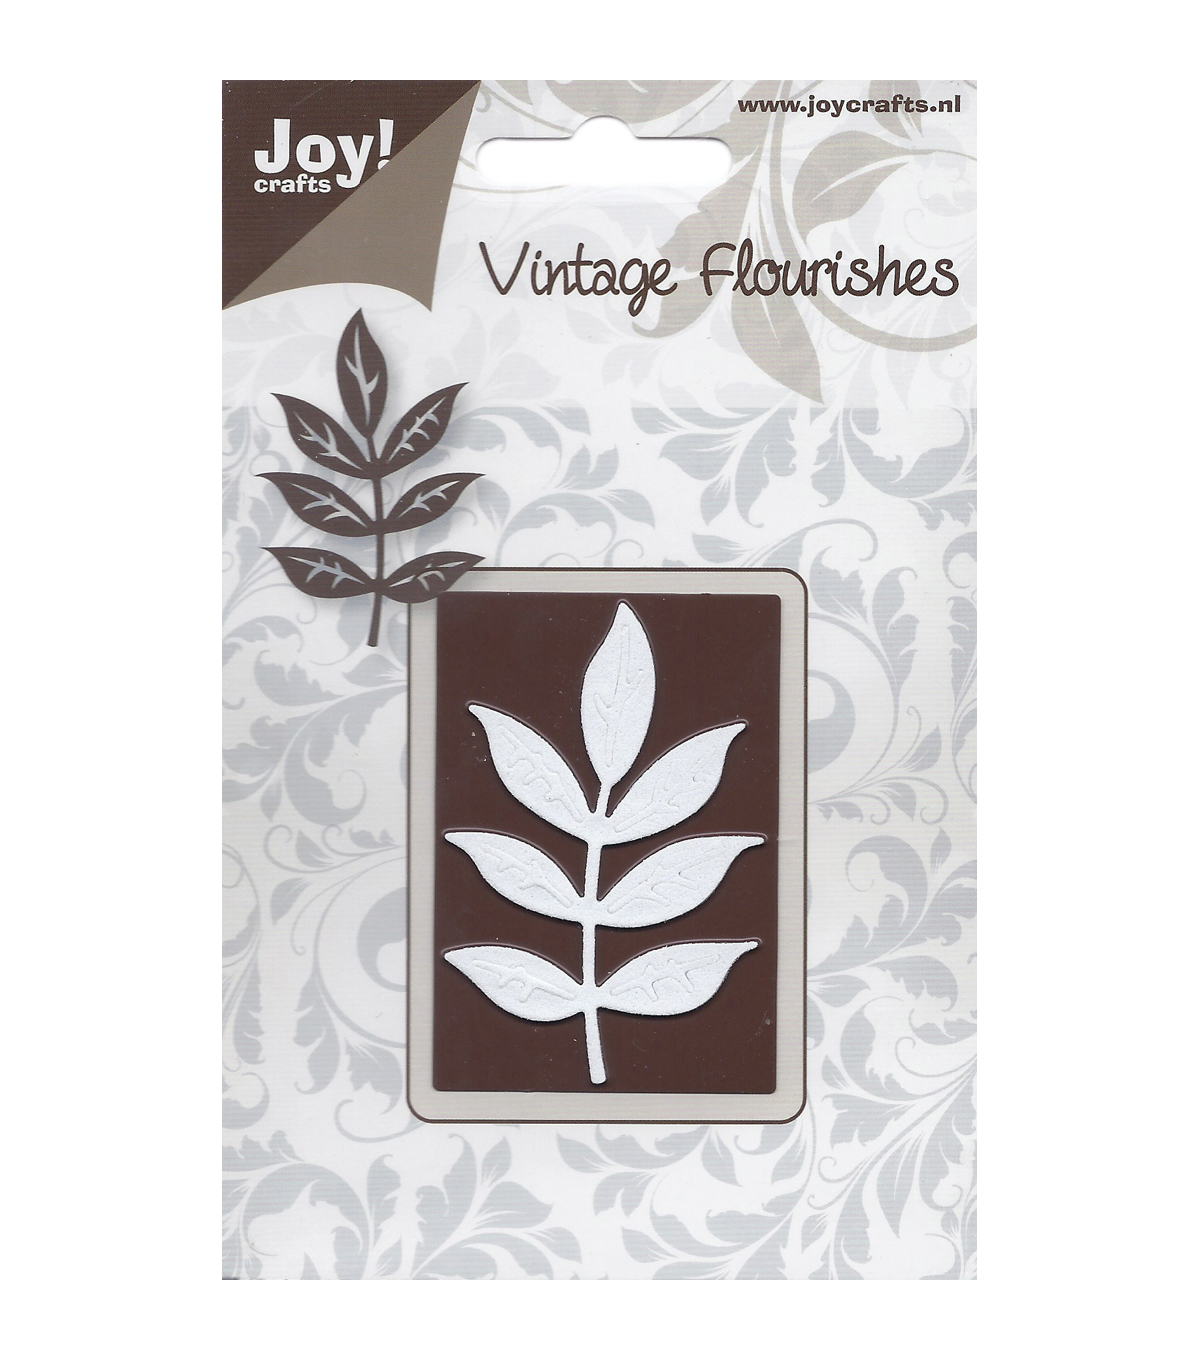 Joy! Crafts Cutting Die-Vintage Flourish/Decorative Leaf Branch